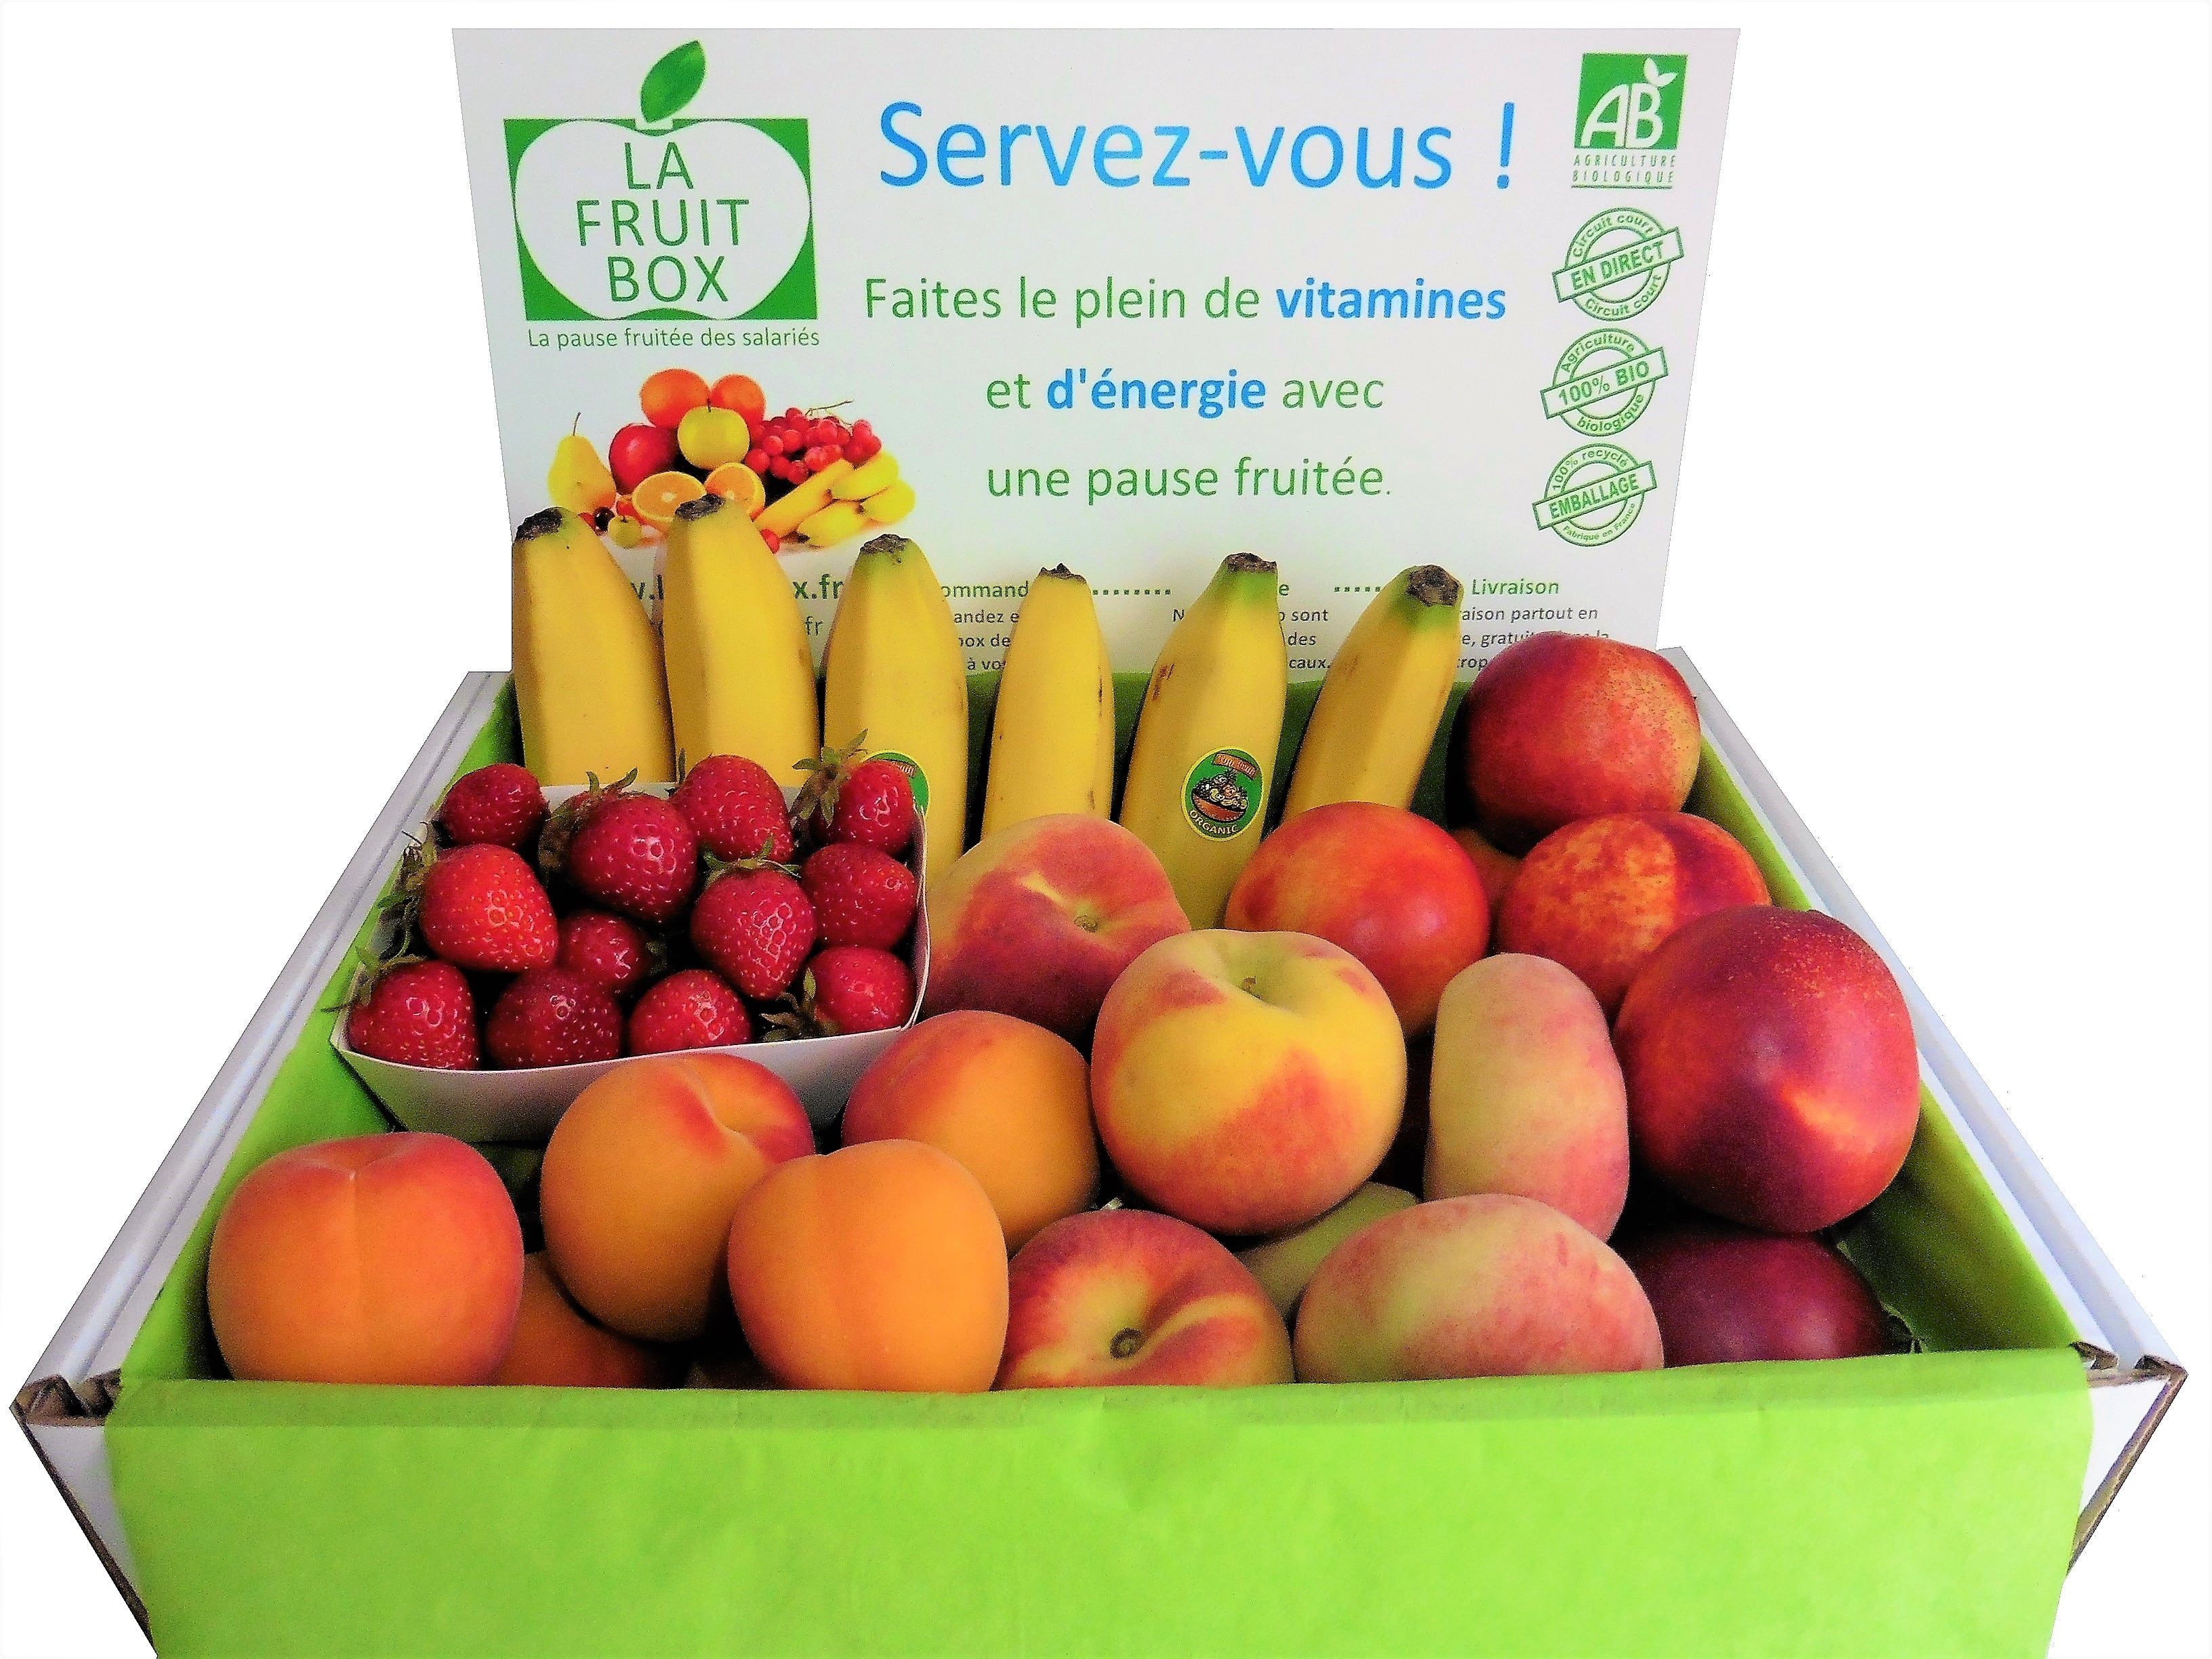 petite box 3kg fruits bio locaux lafruitbox nantes